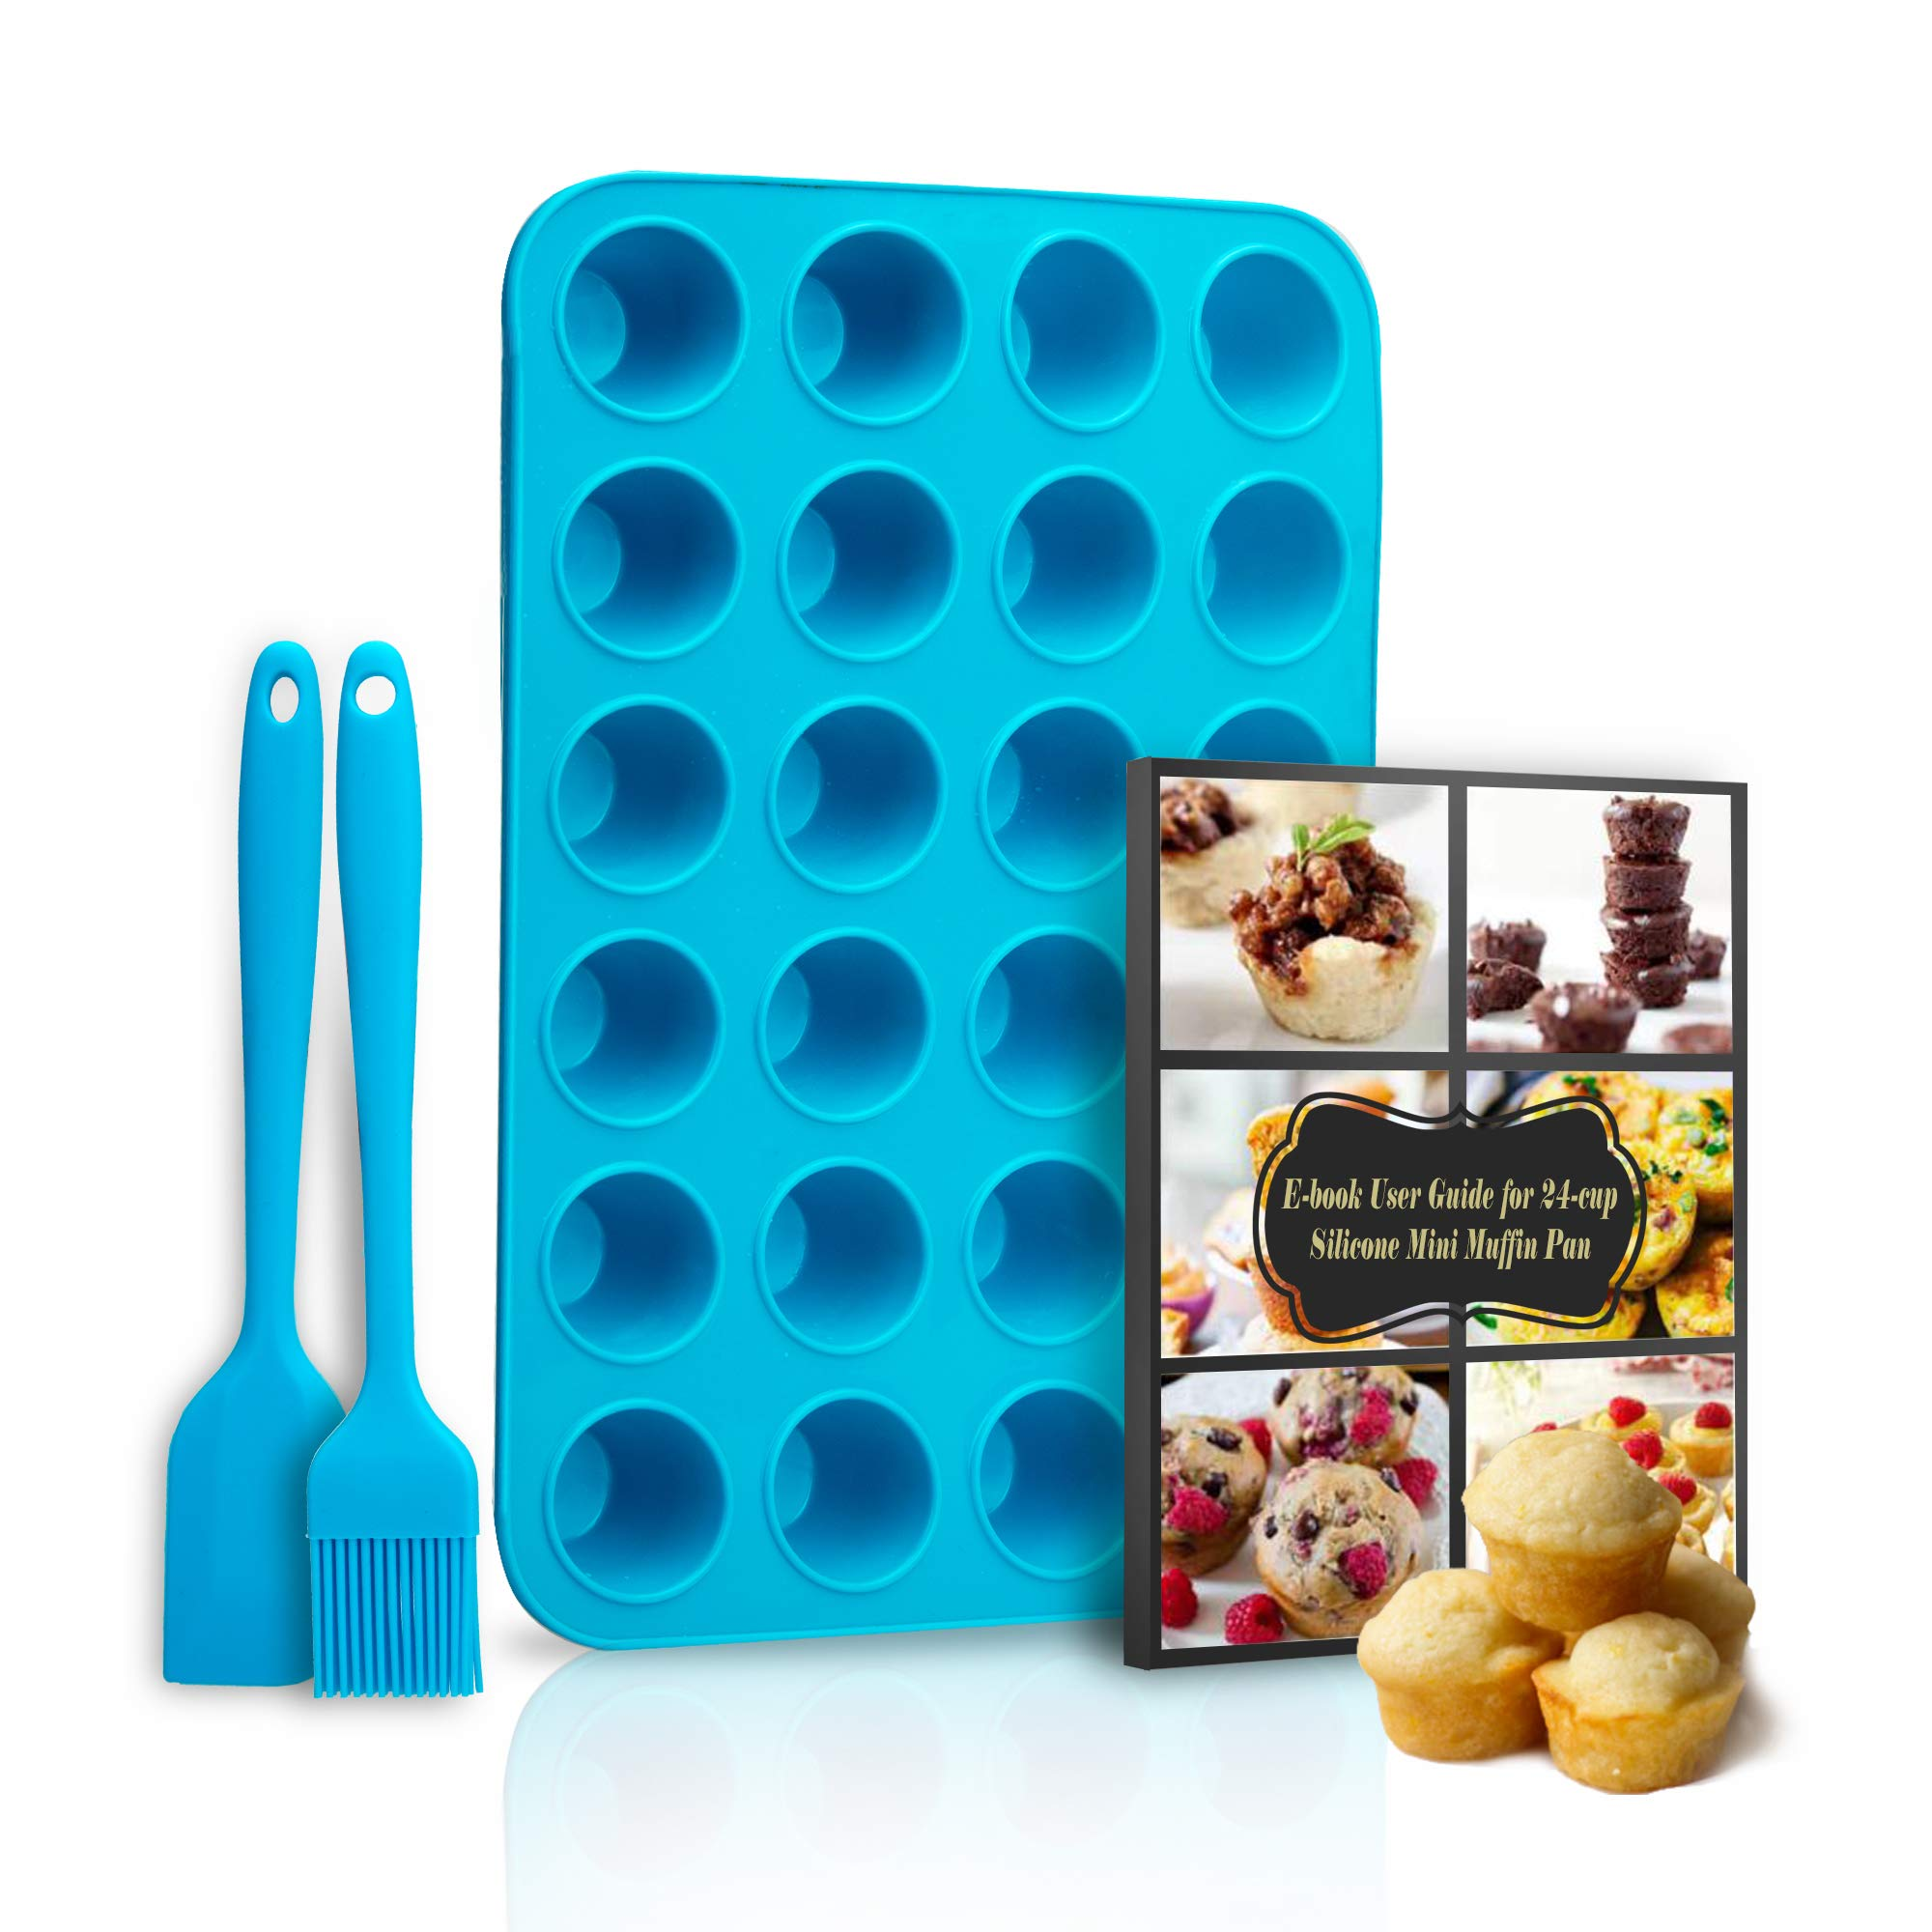 MRTONG 24 Mini Cups Silicone Muffin Pan and Cupcake Pan with Spatula and Oil Brush, 24-Cup Muffin Tray, Silicone Muffin Cupcake Baking Pan, Silicone Muffin Molds, Non-stick Baking Pan, Recipe Ebook by MRTONG